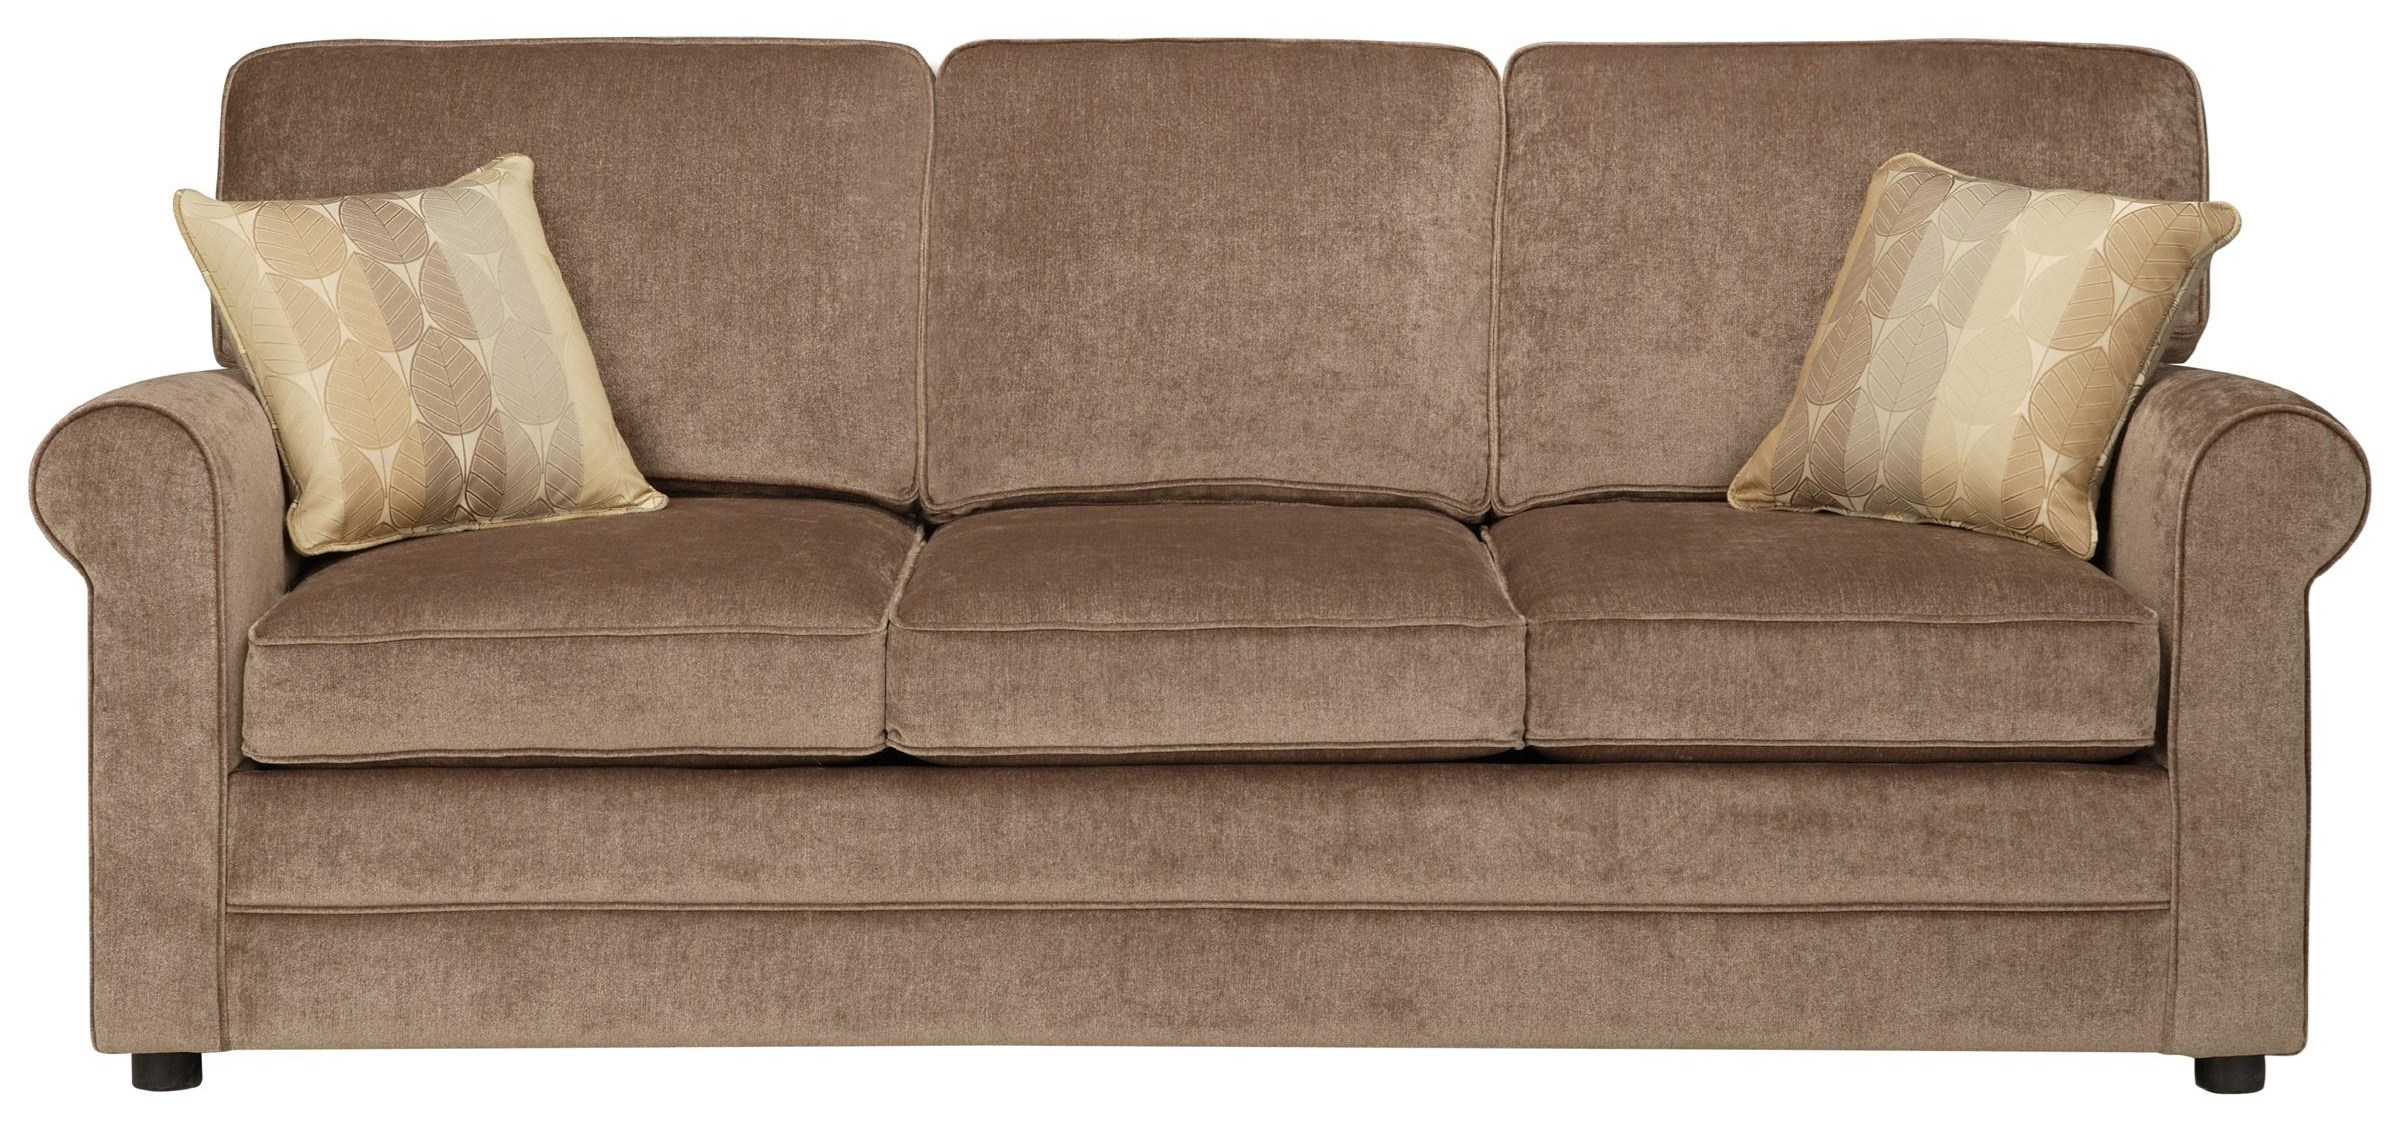 Simmons Upholstery Canada Contessa Queen Sofa Bed Stoney Creek Furniture Sleeper Sofas